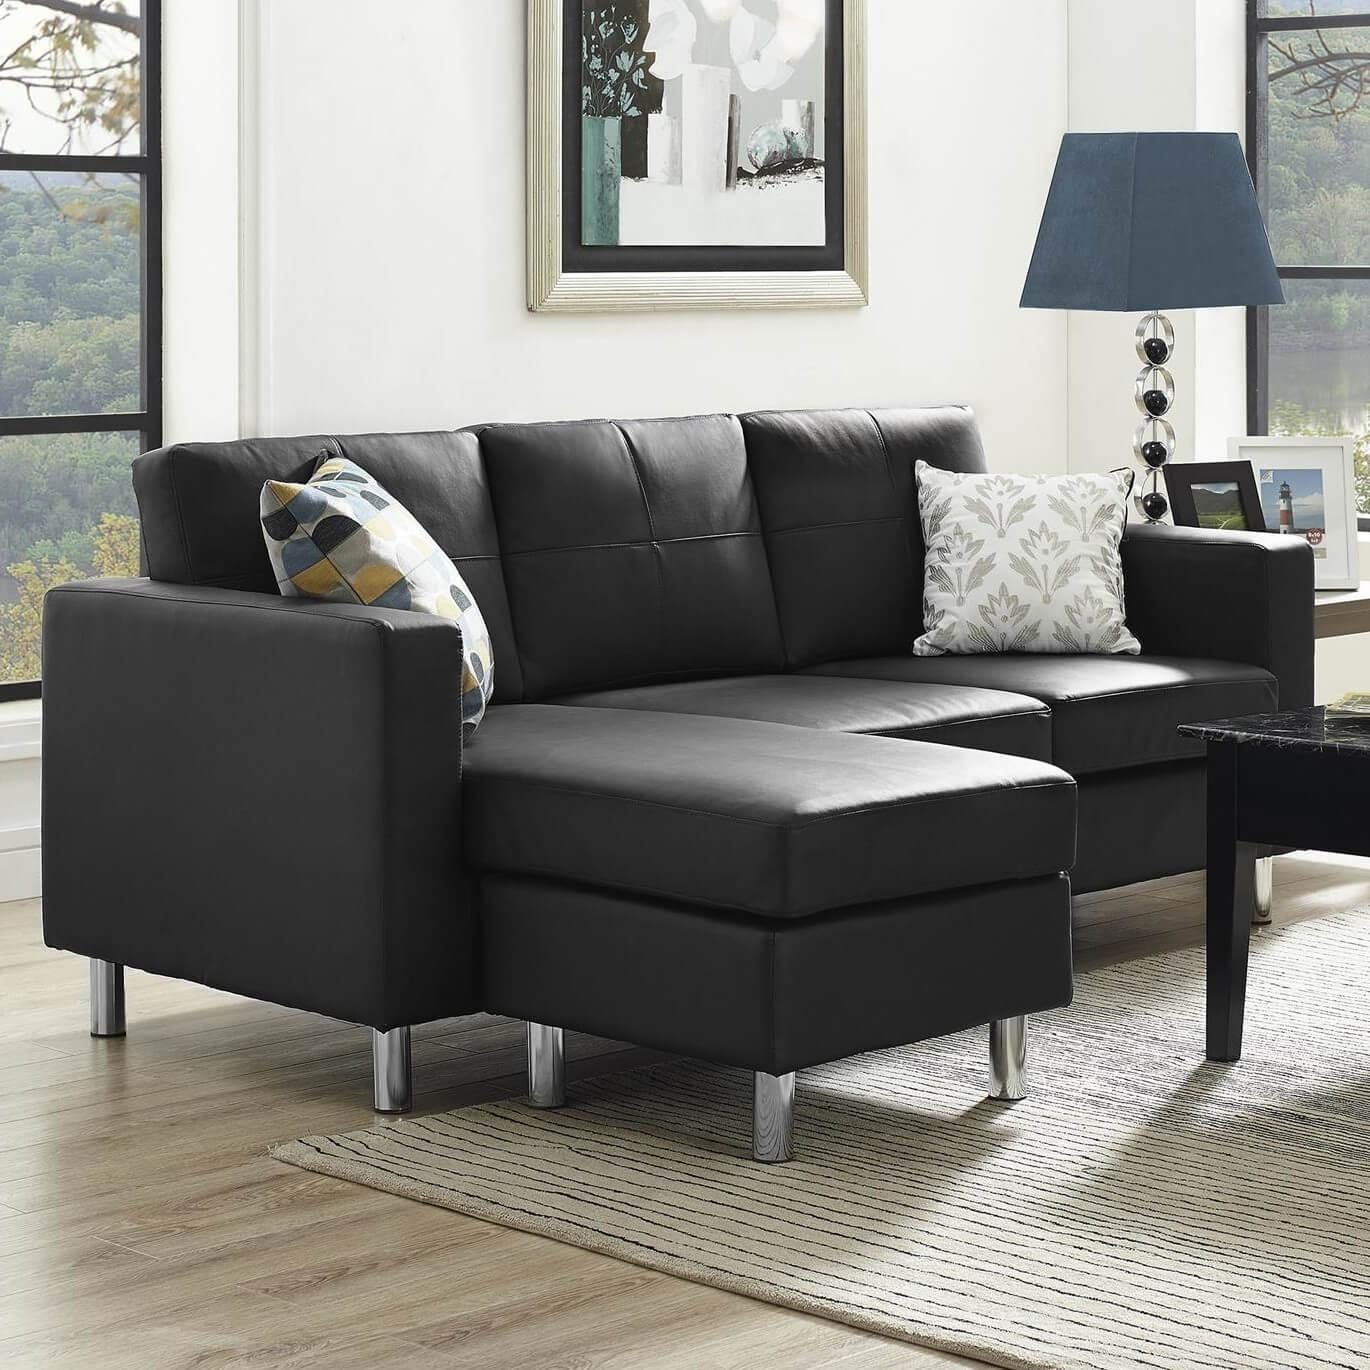 13 Sectional Sofas Under $500 (Several Styles) | Home Stratosphere For Black Microfiber Sectional Sofas (View 20 of 20)